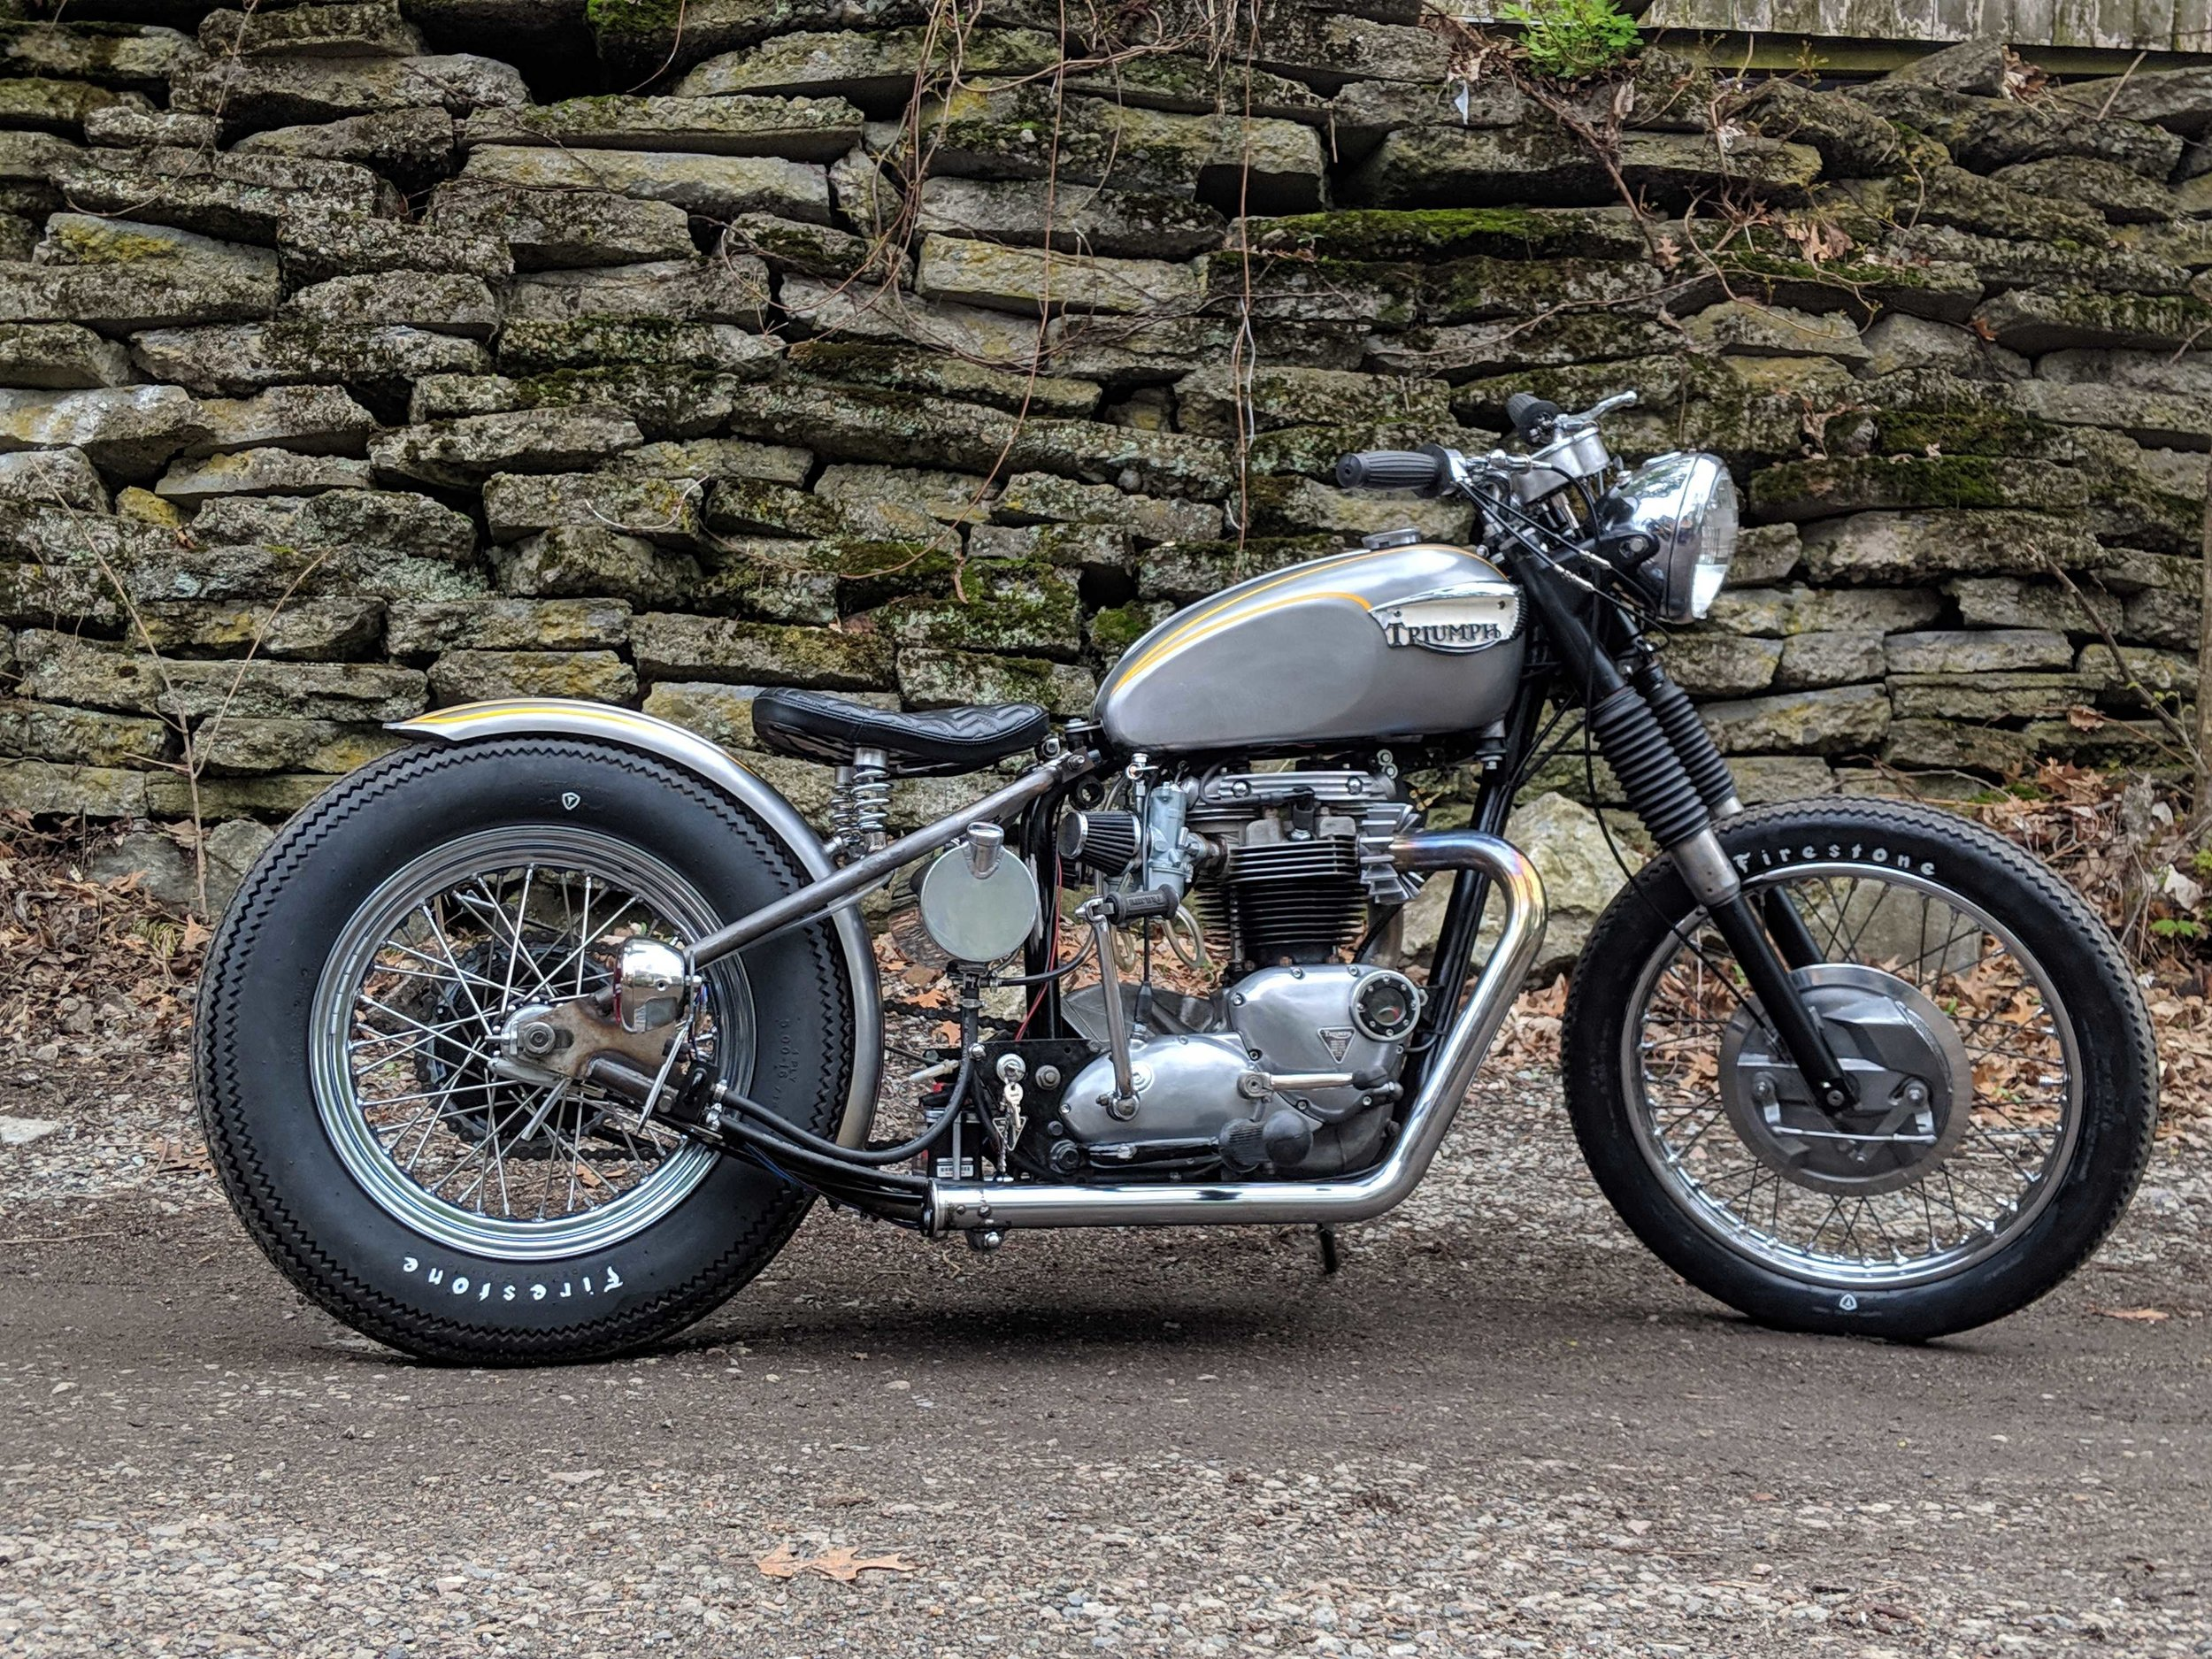 The story, straight from a first time builder… - Sylvie started life as a 1968 Triumph Bonneville T120 650cc. By the time I found her, the frame and motor no longer matched – both from 1968, but not originally paired together. Common enough with these old bikes. The tank was from a TR6, the parcel grid was from a pre-unit Triumph and the front end was upgraded to a 1969 twin leading shoe drum brake. I note all this because I had plans to do some major changes, so I was on the look for a project bike that wasn't a resto quality survivor. It would be a sin to do what I did to her if she were a barn fresh, all original matching bike. Sylvie ran, and was complete, and the price was right – so I popped on her.